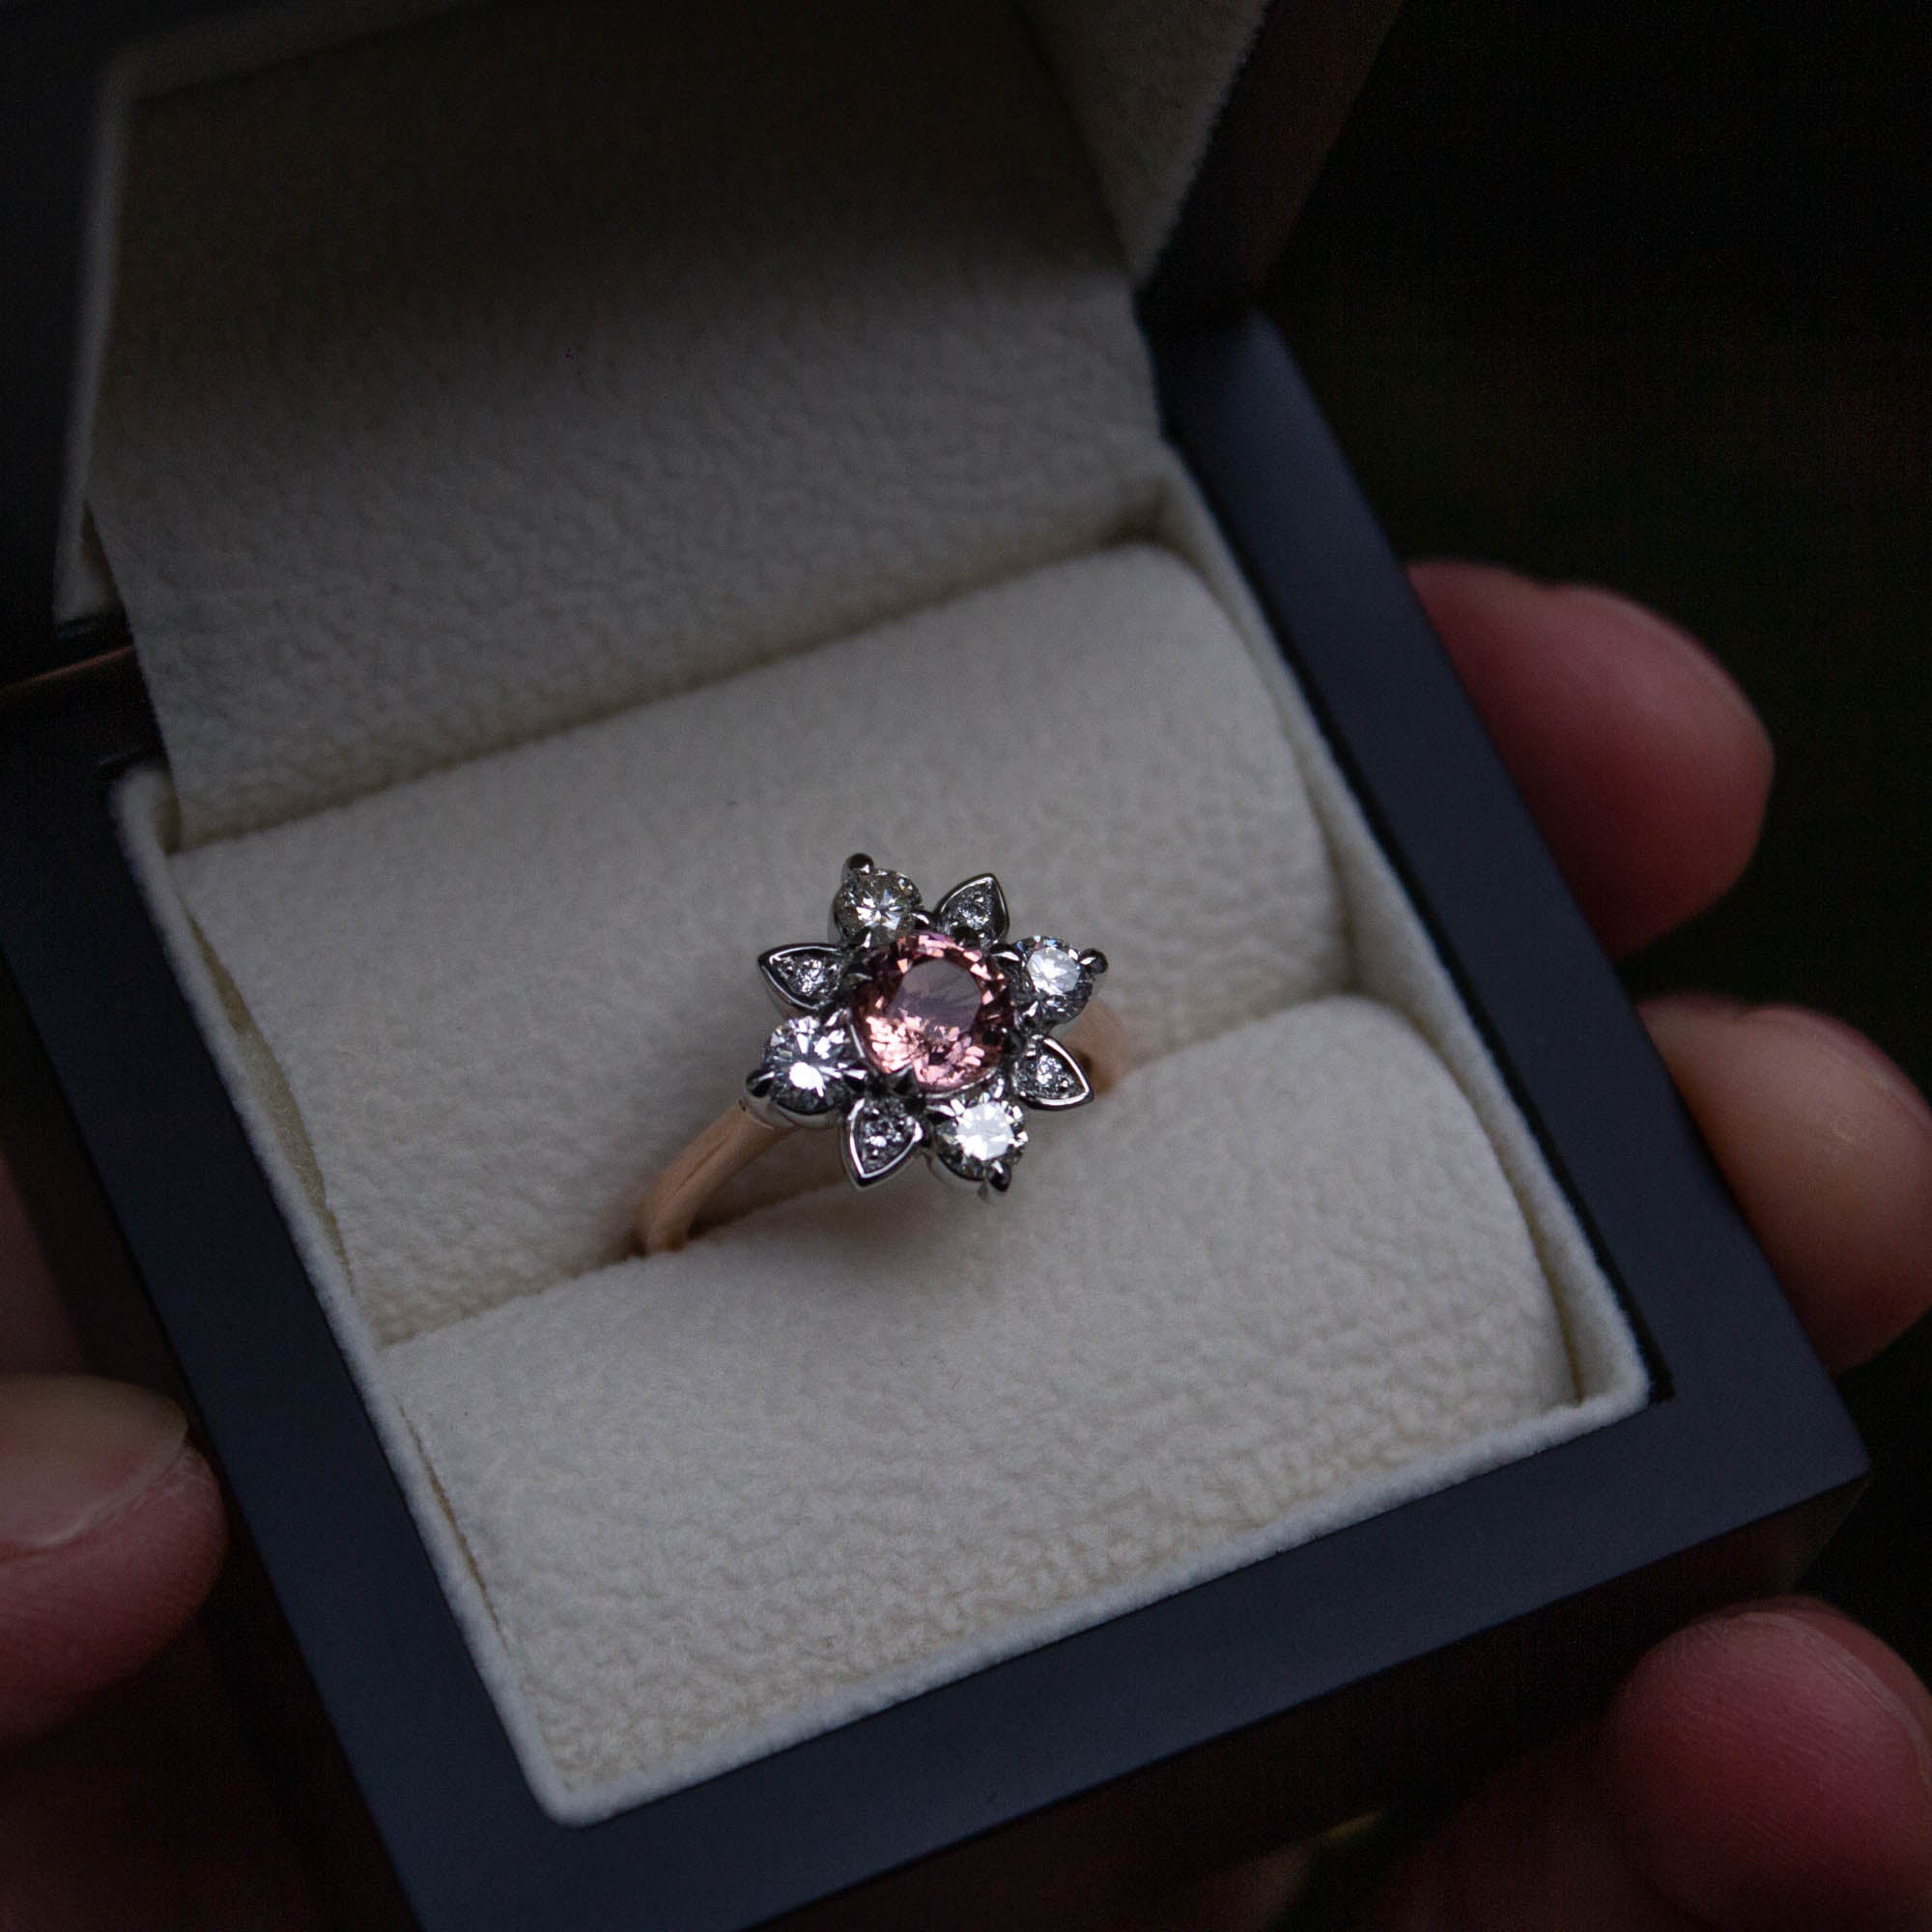 Bespoke garnet and diamond engagement ring